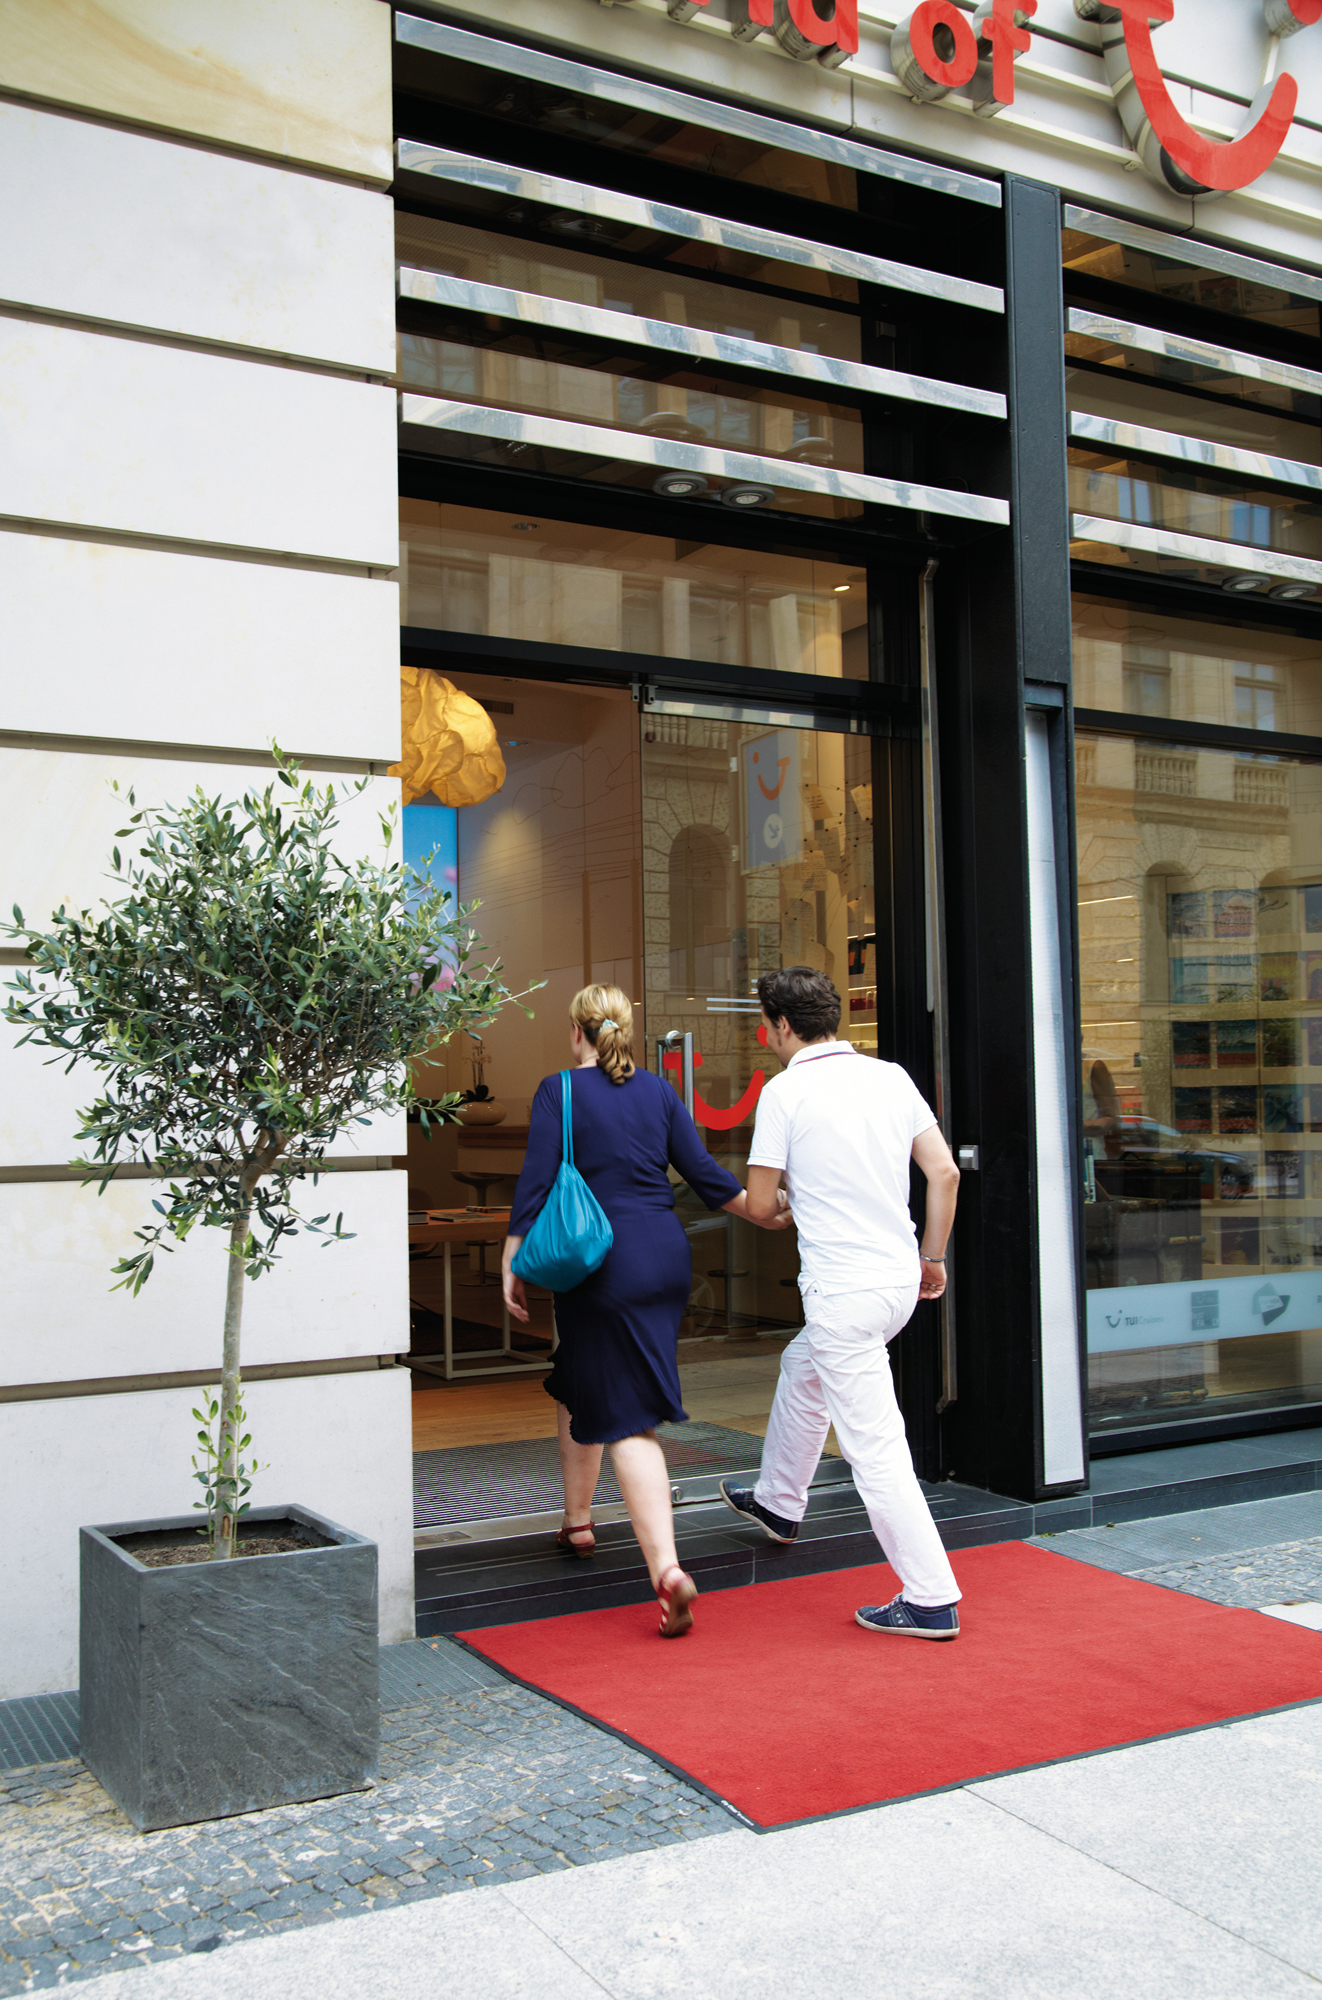 World of TUI Reisebüro in Berlin